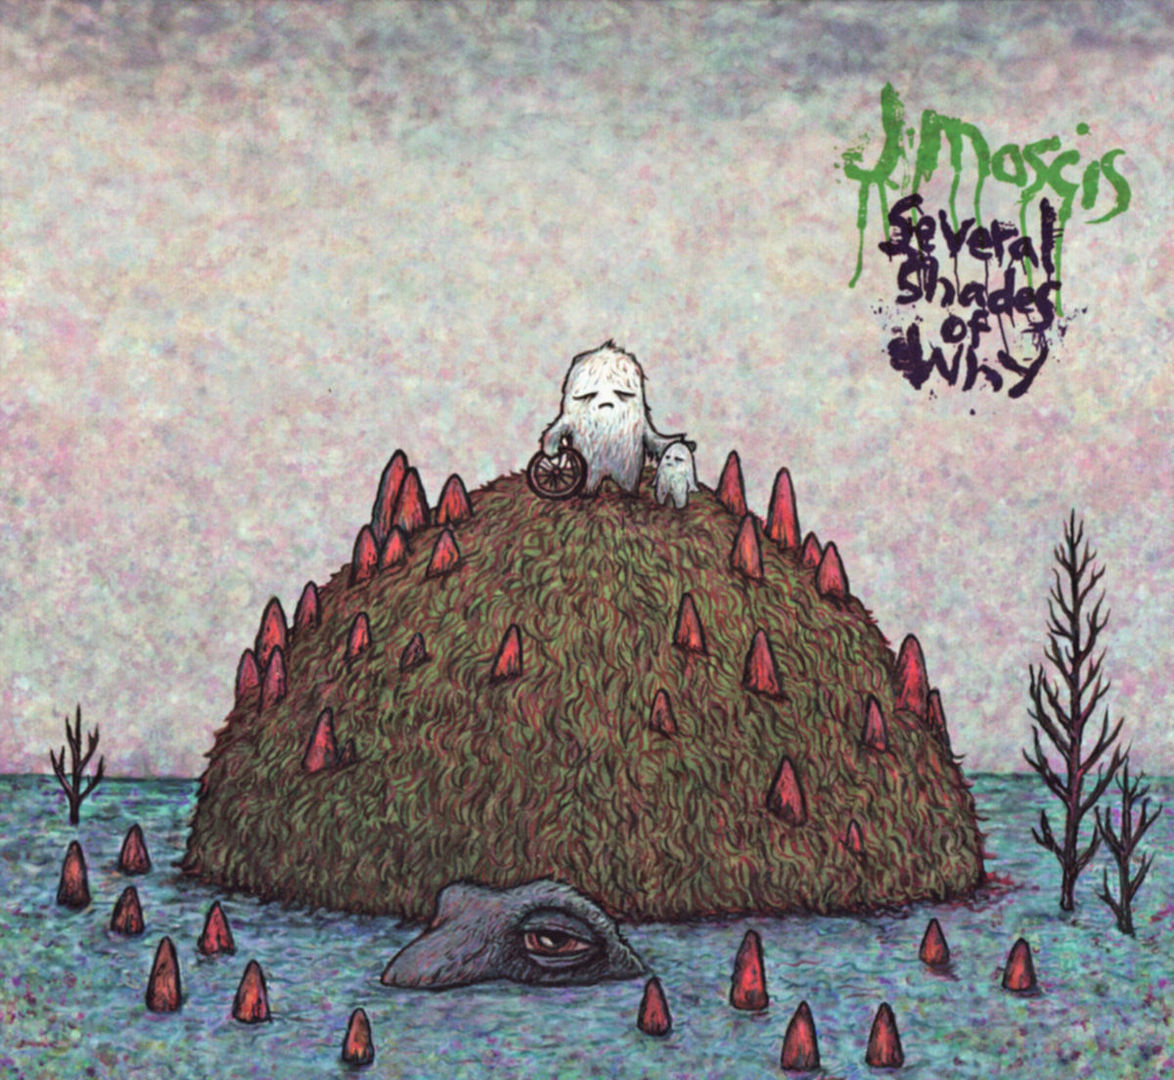 j-mascis-several-shades-of-why